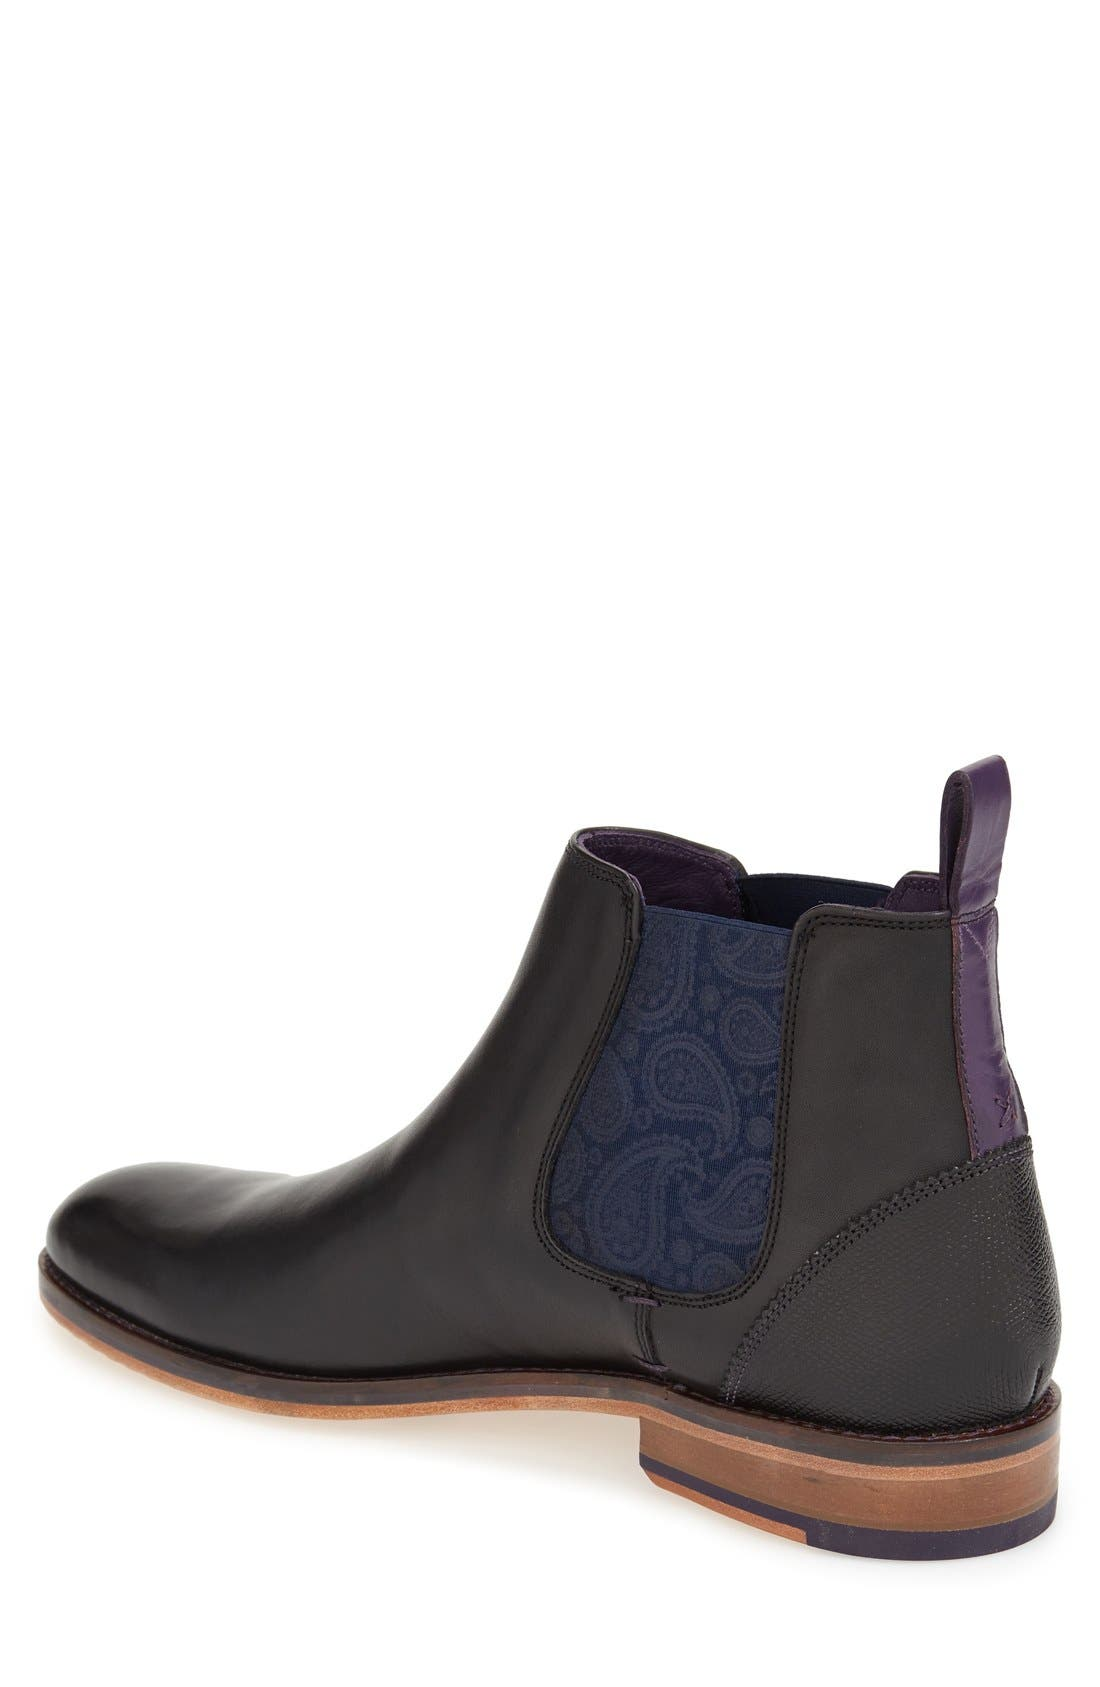 TED BAKER LONDON, 'Camroon 4' Chelsea Boot, Alternate thumbnail 2, color, BLACK LEATHER